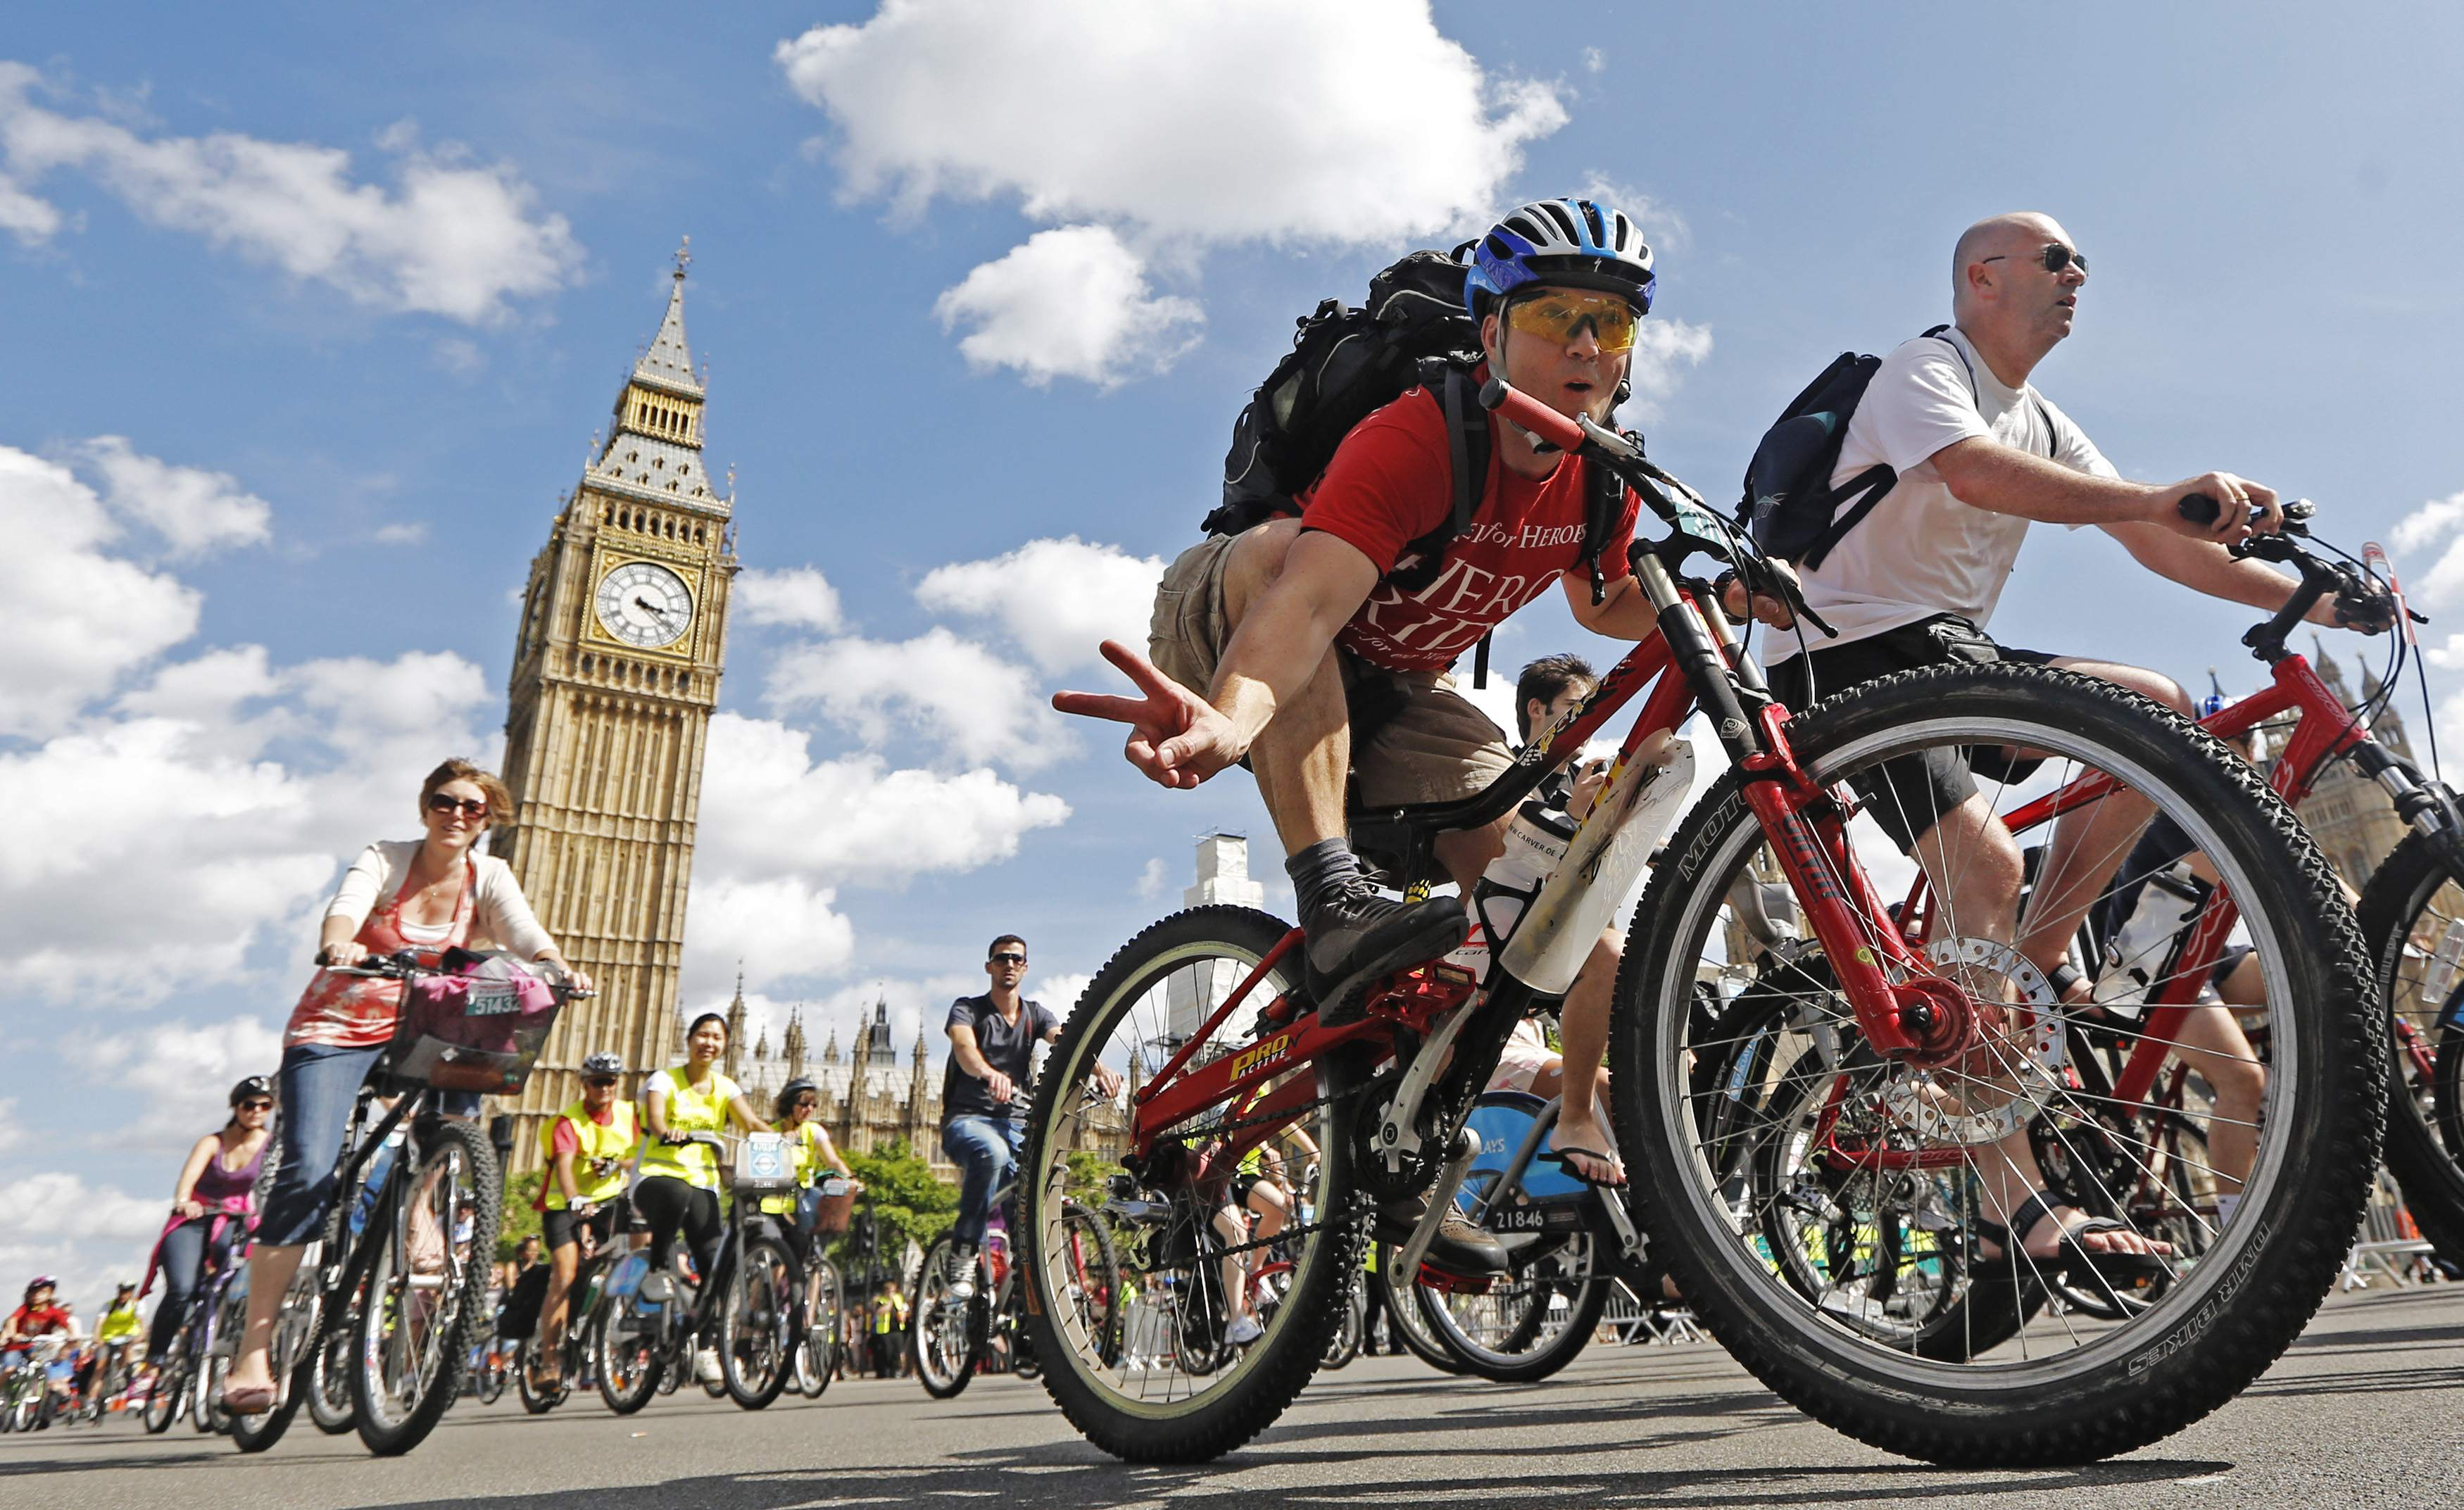 Prudential RideLondon - cycling for charity - L'ItaloEuropeo